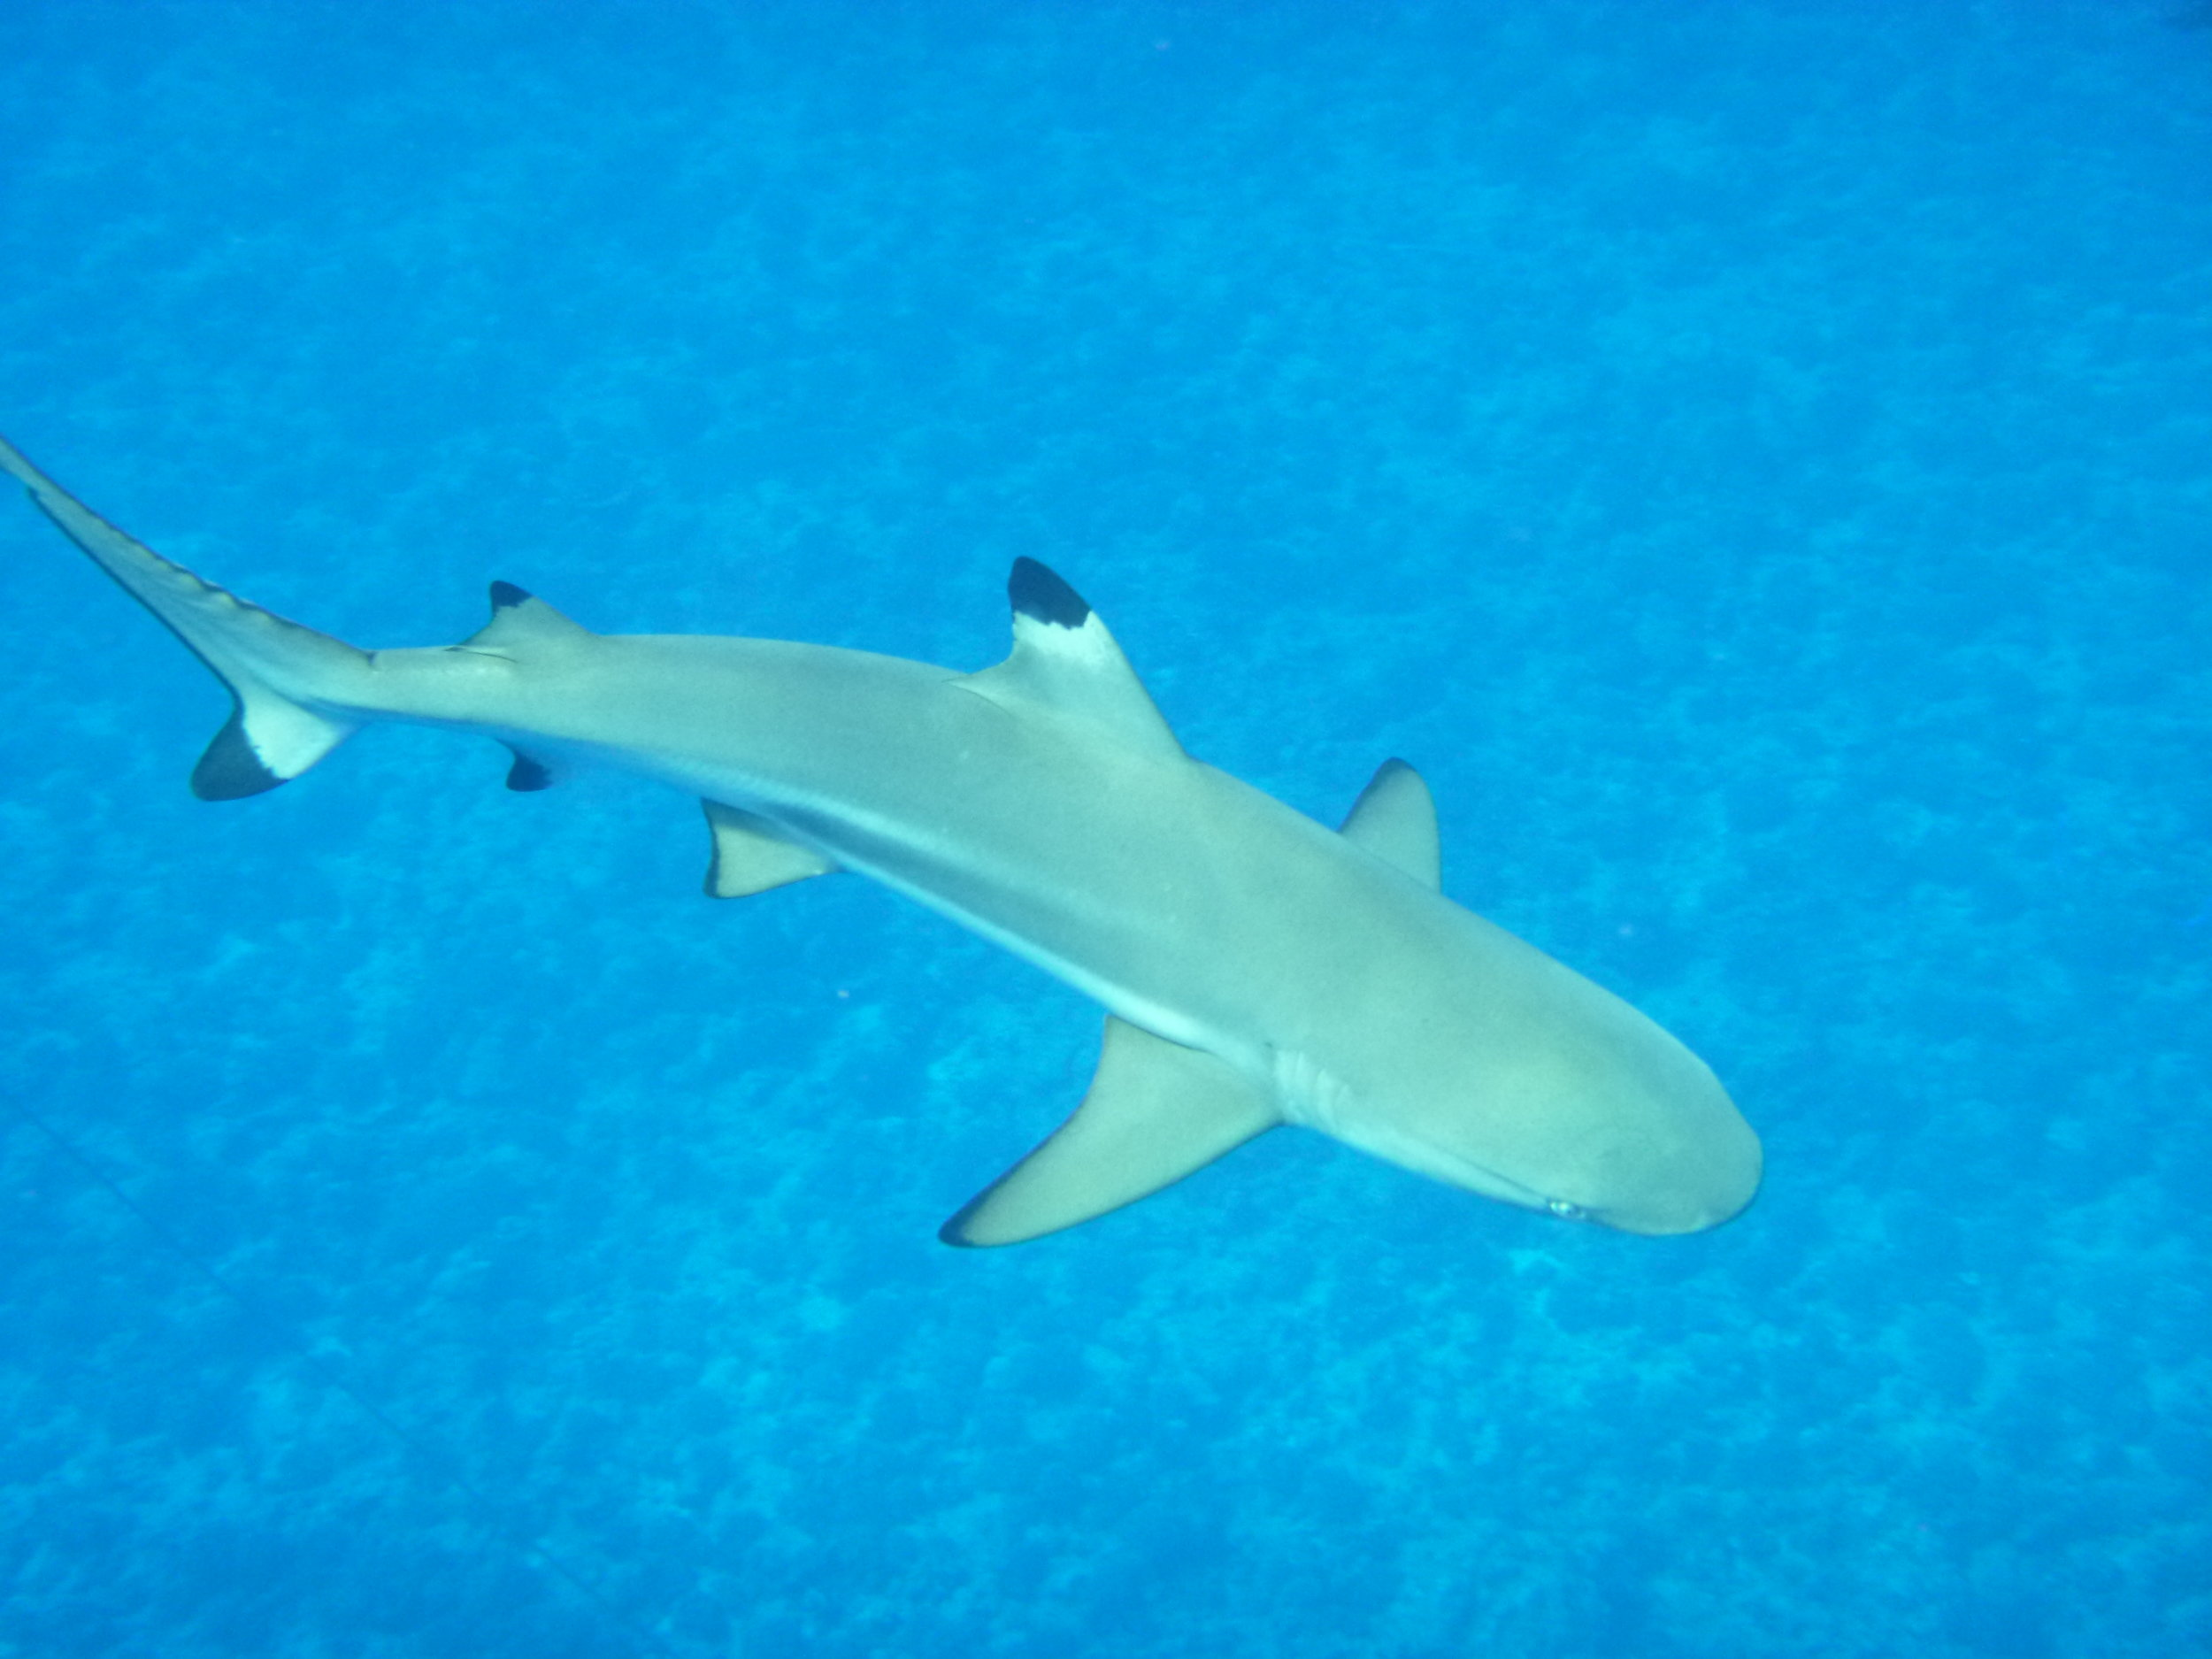 The blacktip reef sharks come as close as about 10 feet